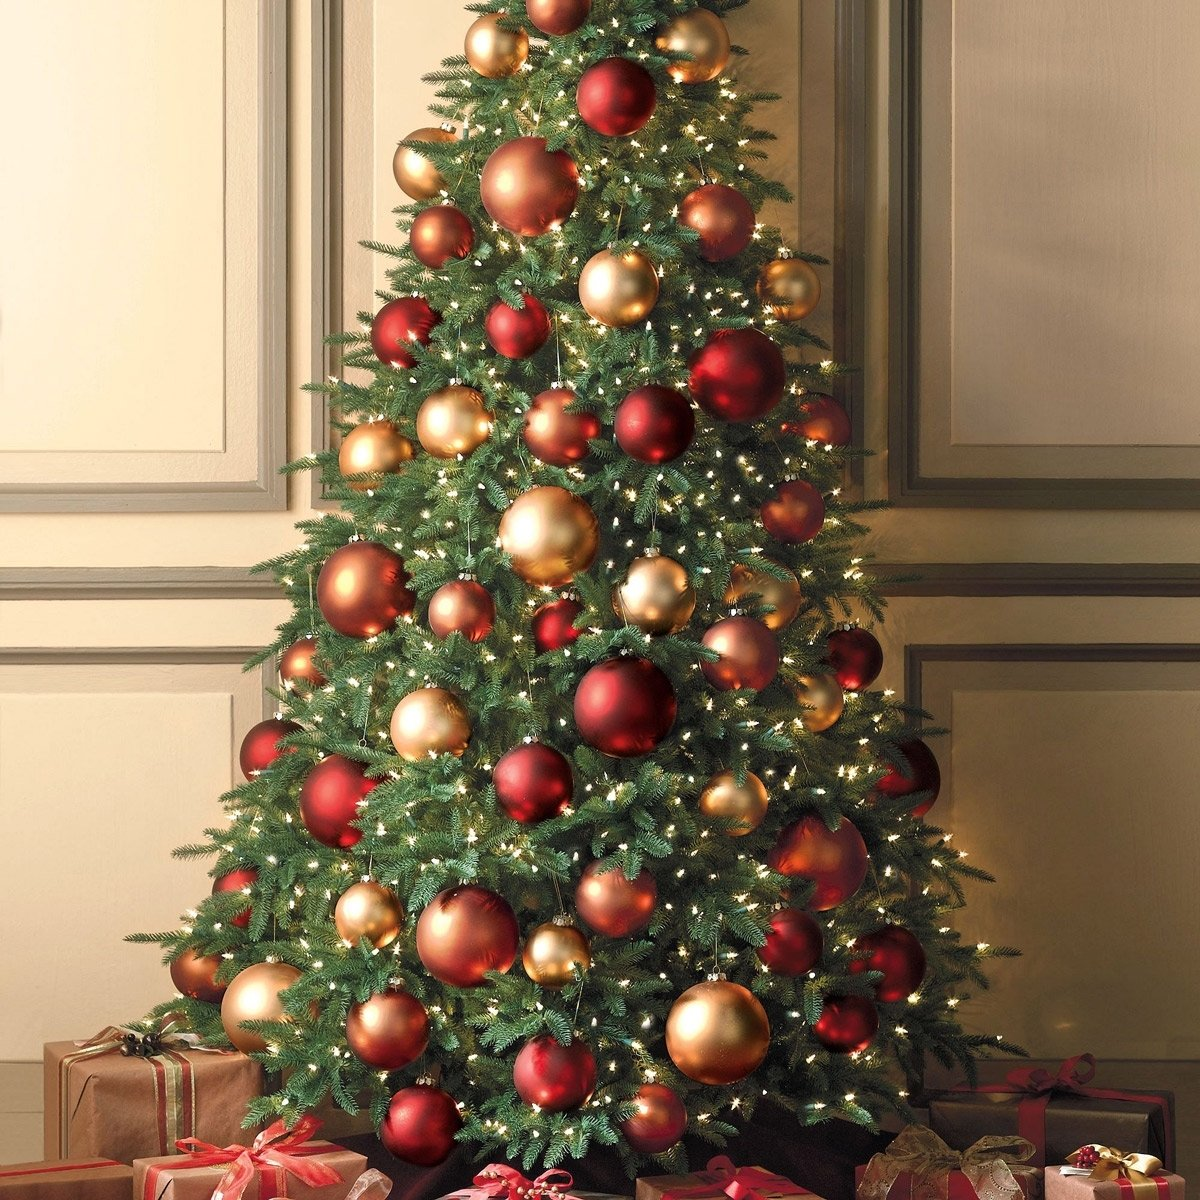 10 Amazing Red And Gold Christmas Tree Decorating Ideas accessories charming design ideas using rounded grey standing lamps 2021